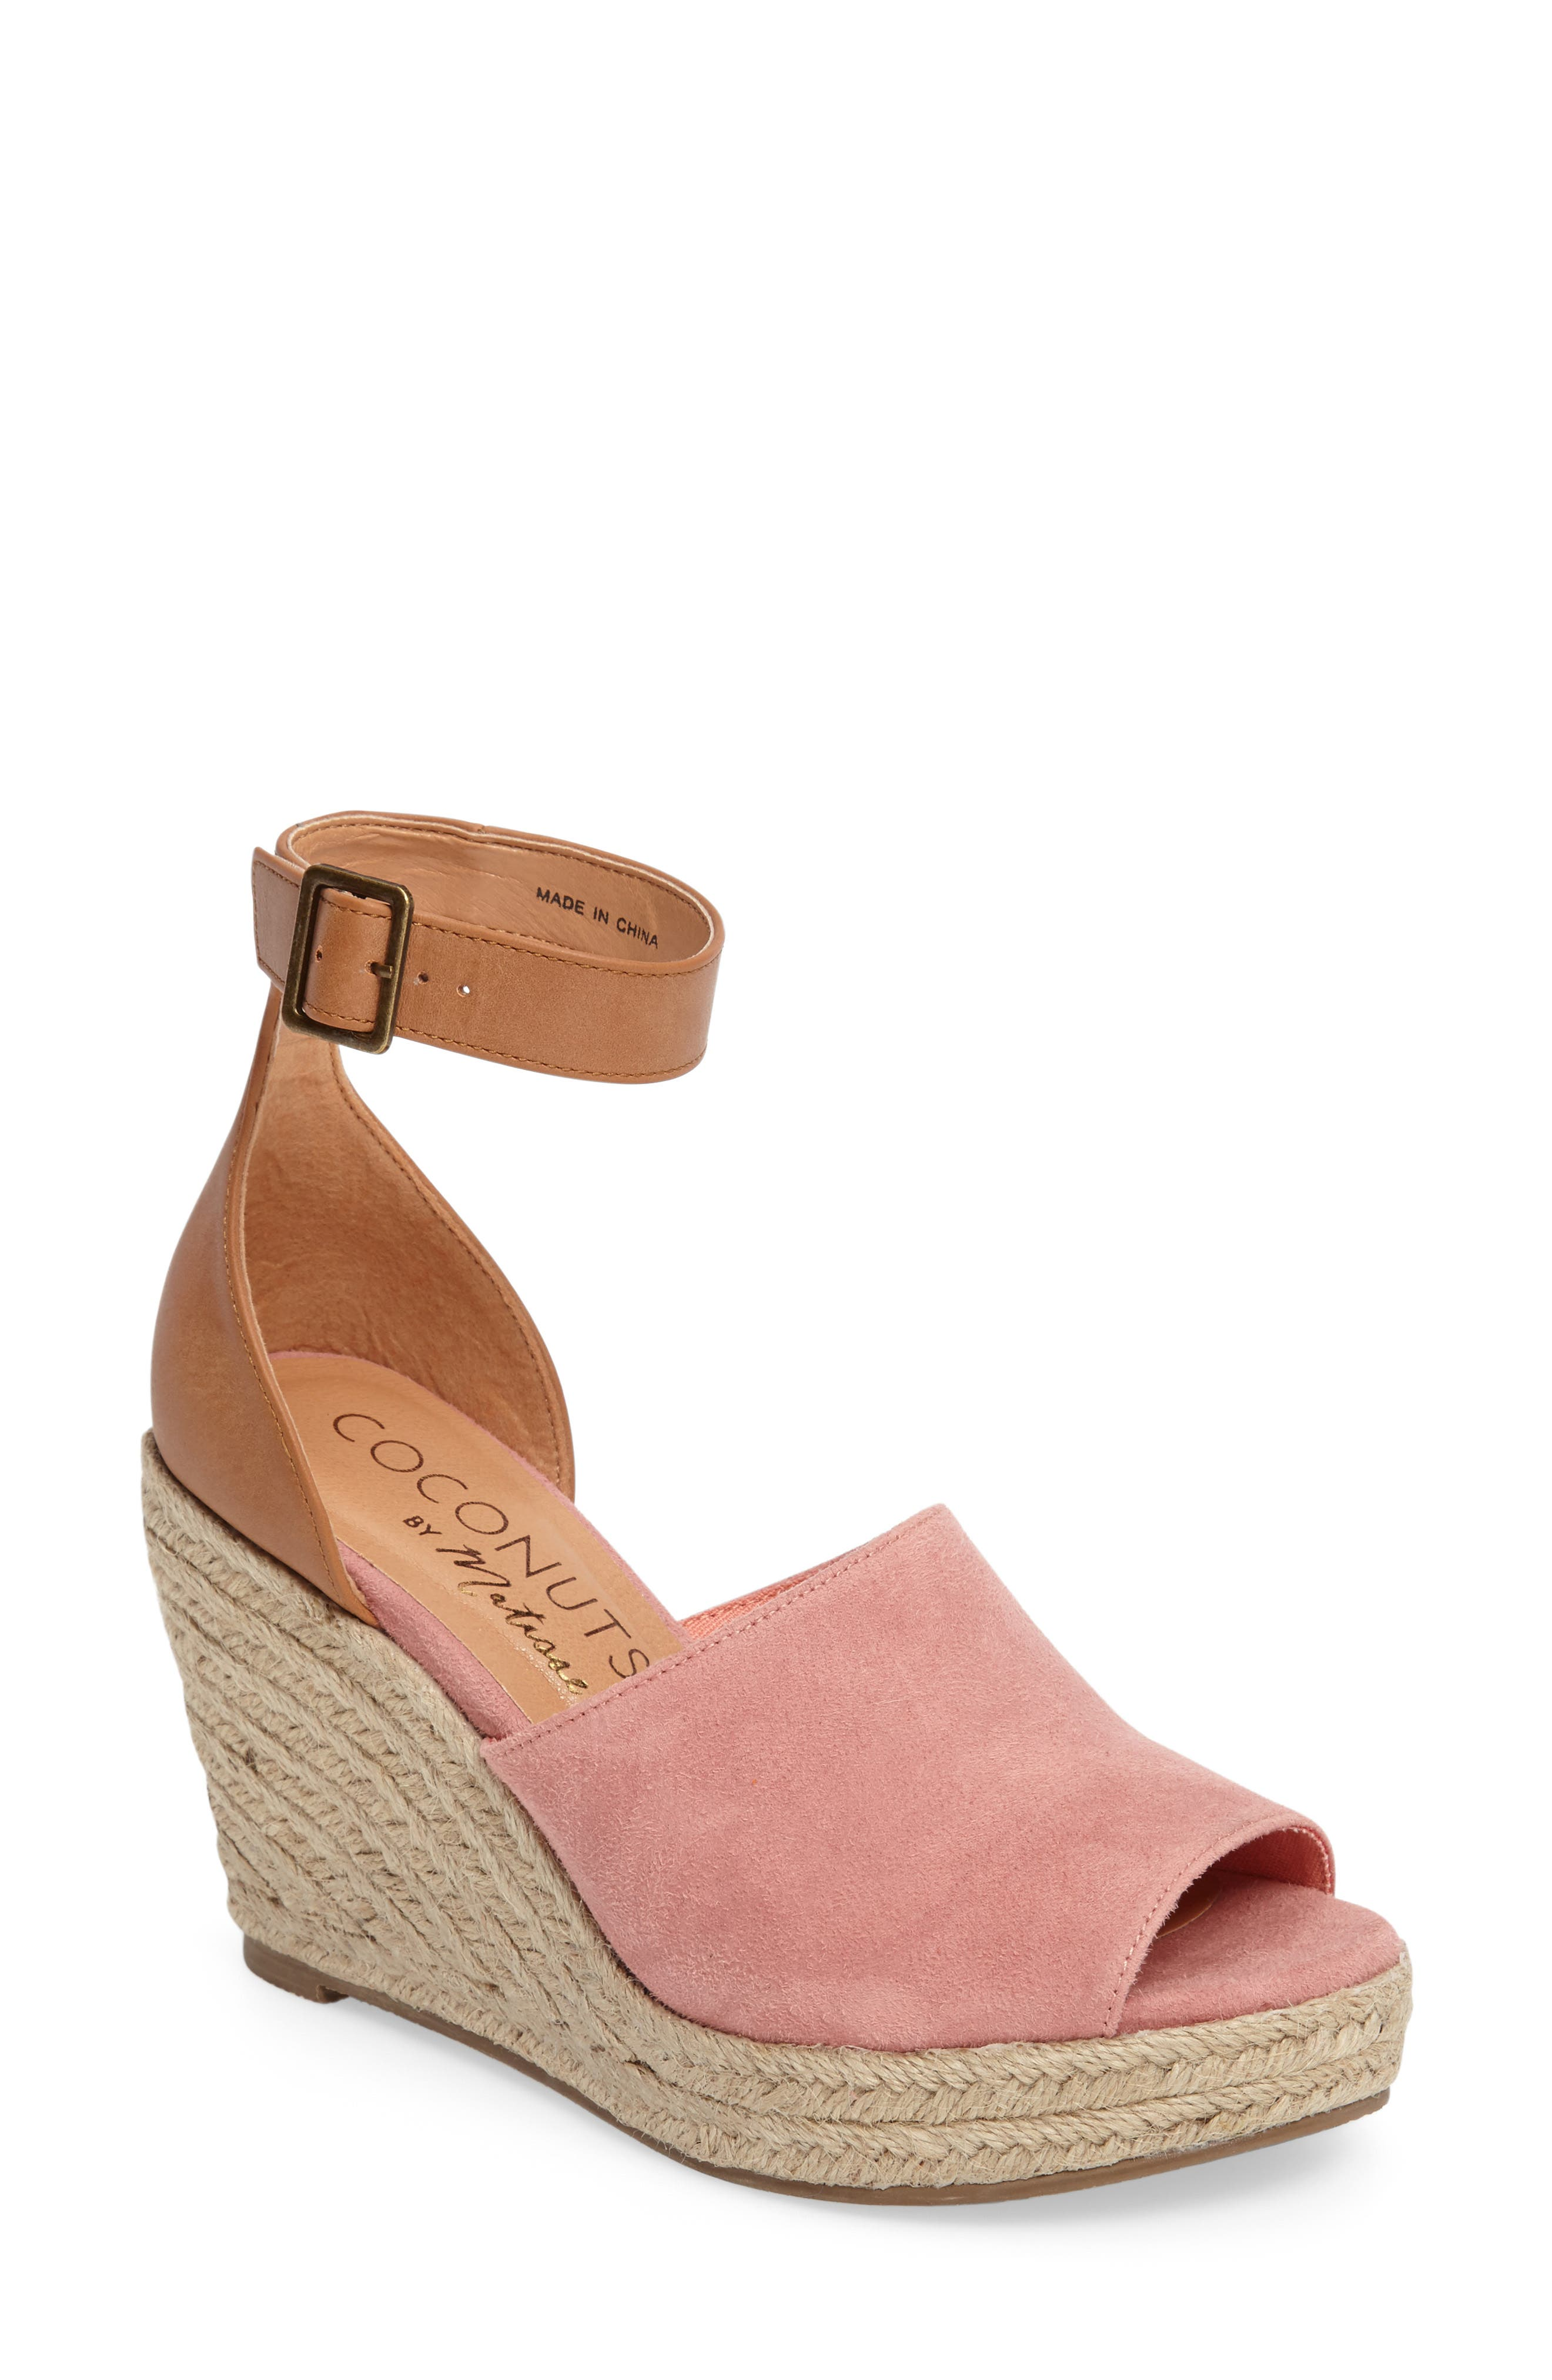 Main Image - Matisse Flamingo Wedge Sandal (Women)